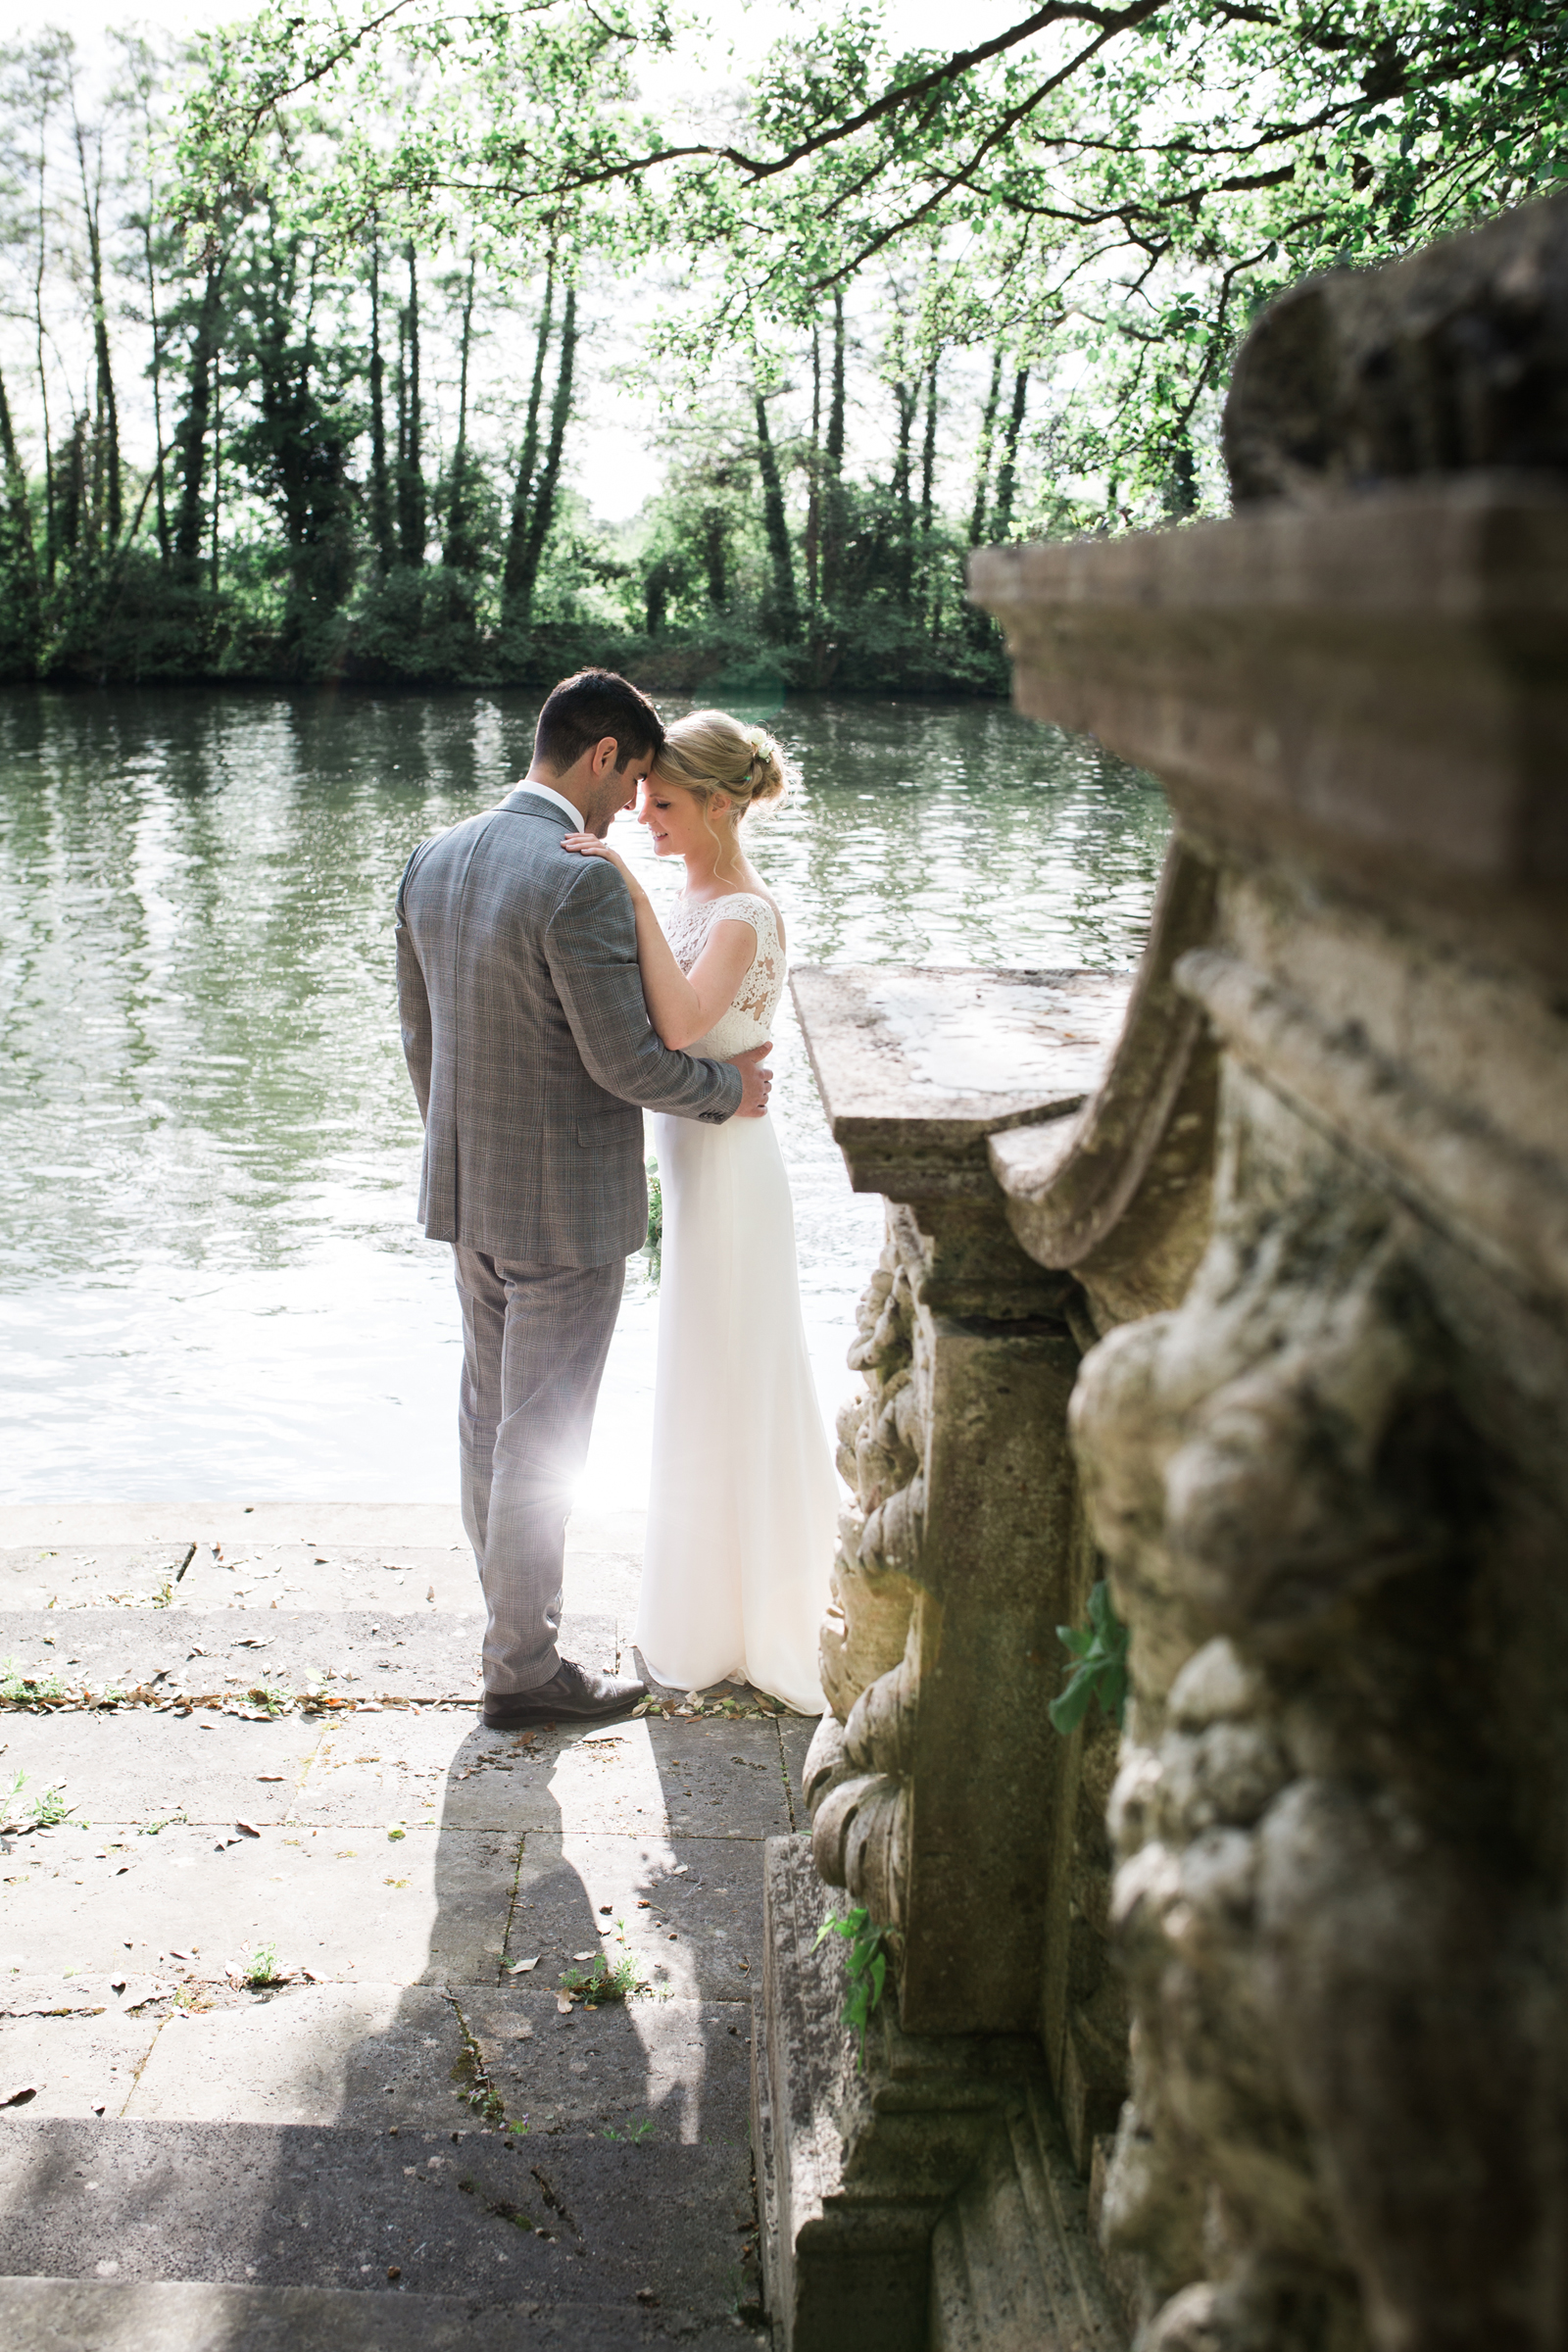 Cliveden Wedding Venue Summer Cottage Bride and Groom